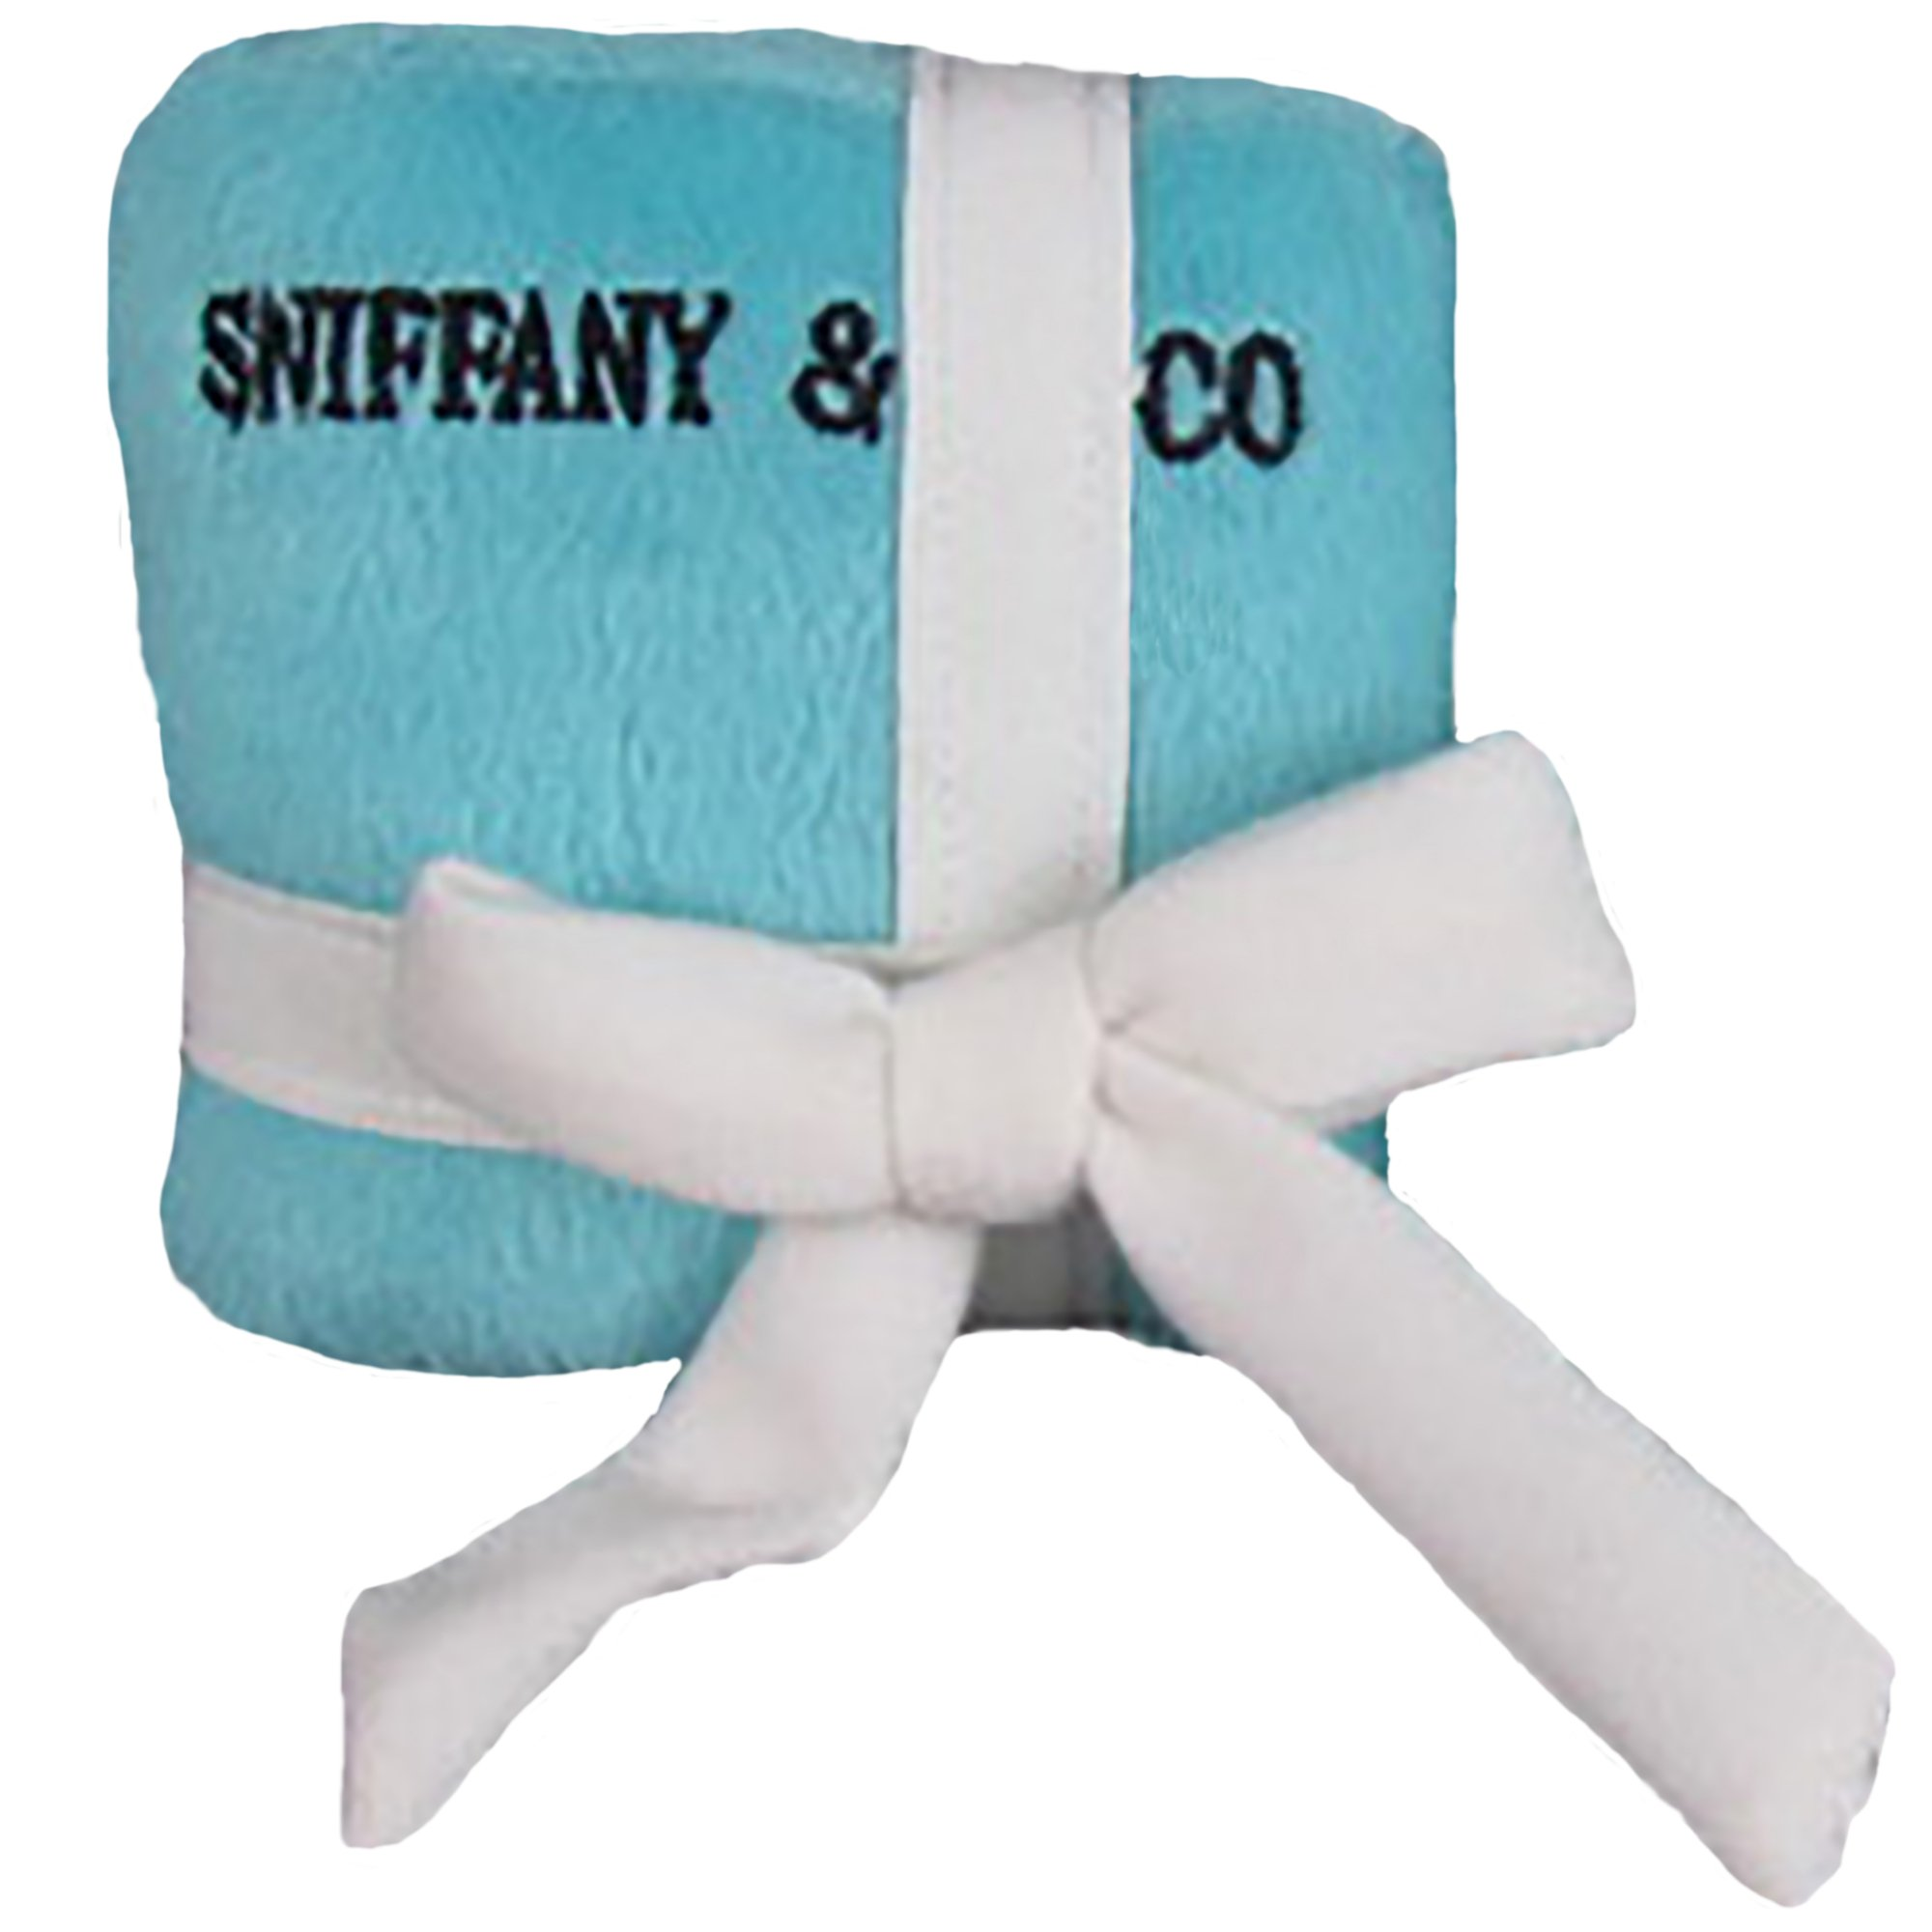 Sniffany and Co Plush Dog Parody GiftBox Toy w/ Squeaker - Small by Dog Diggin Designs by Dog Diggin Designs (Image #1)